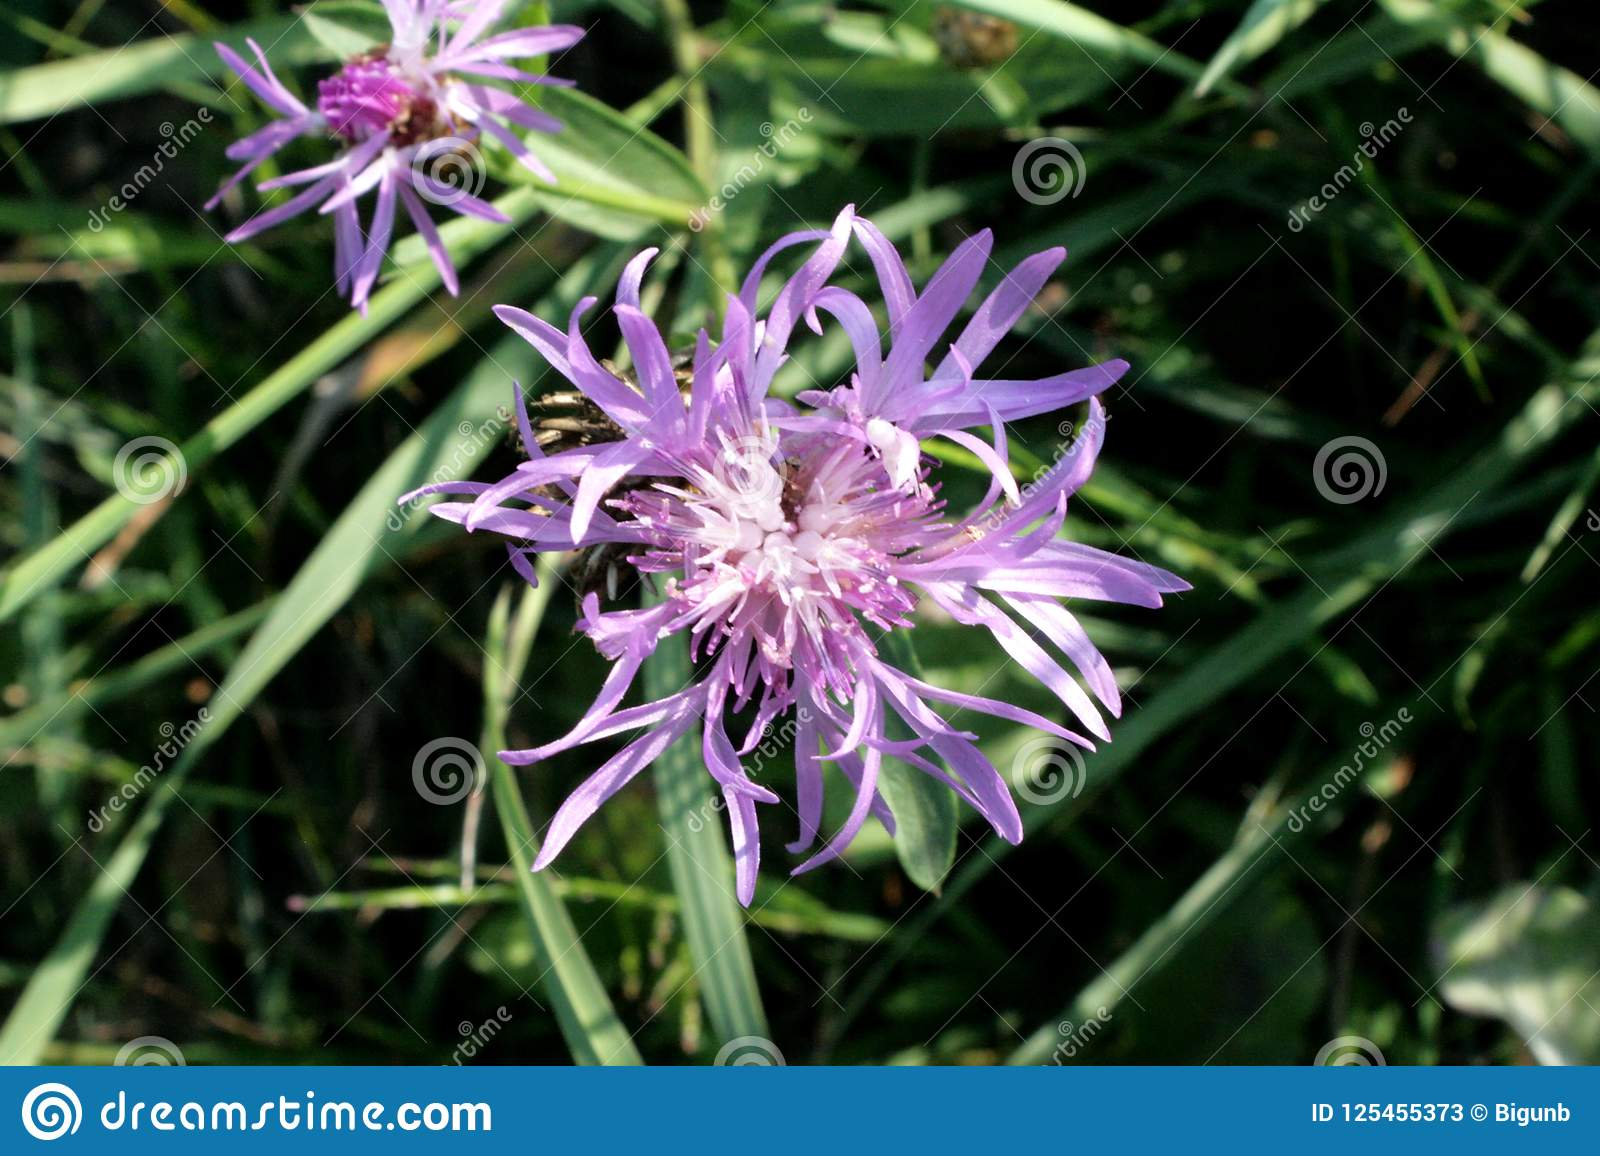 Purple Flower Weed Is Unique Stock Image Image Of Great Gadgets 125455373